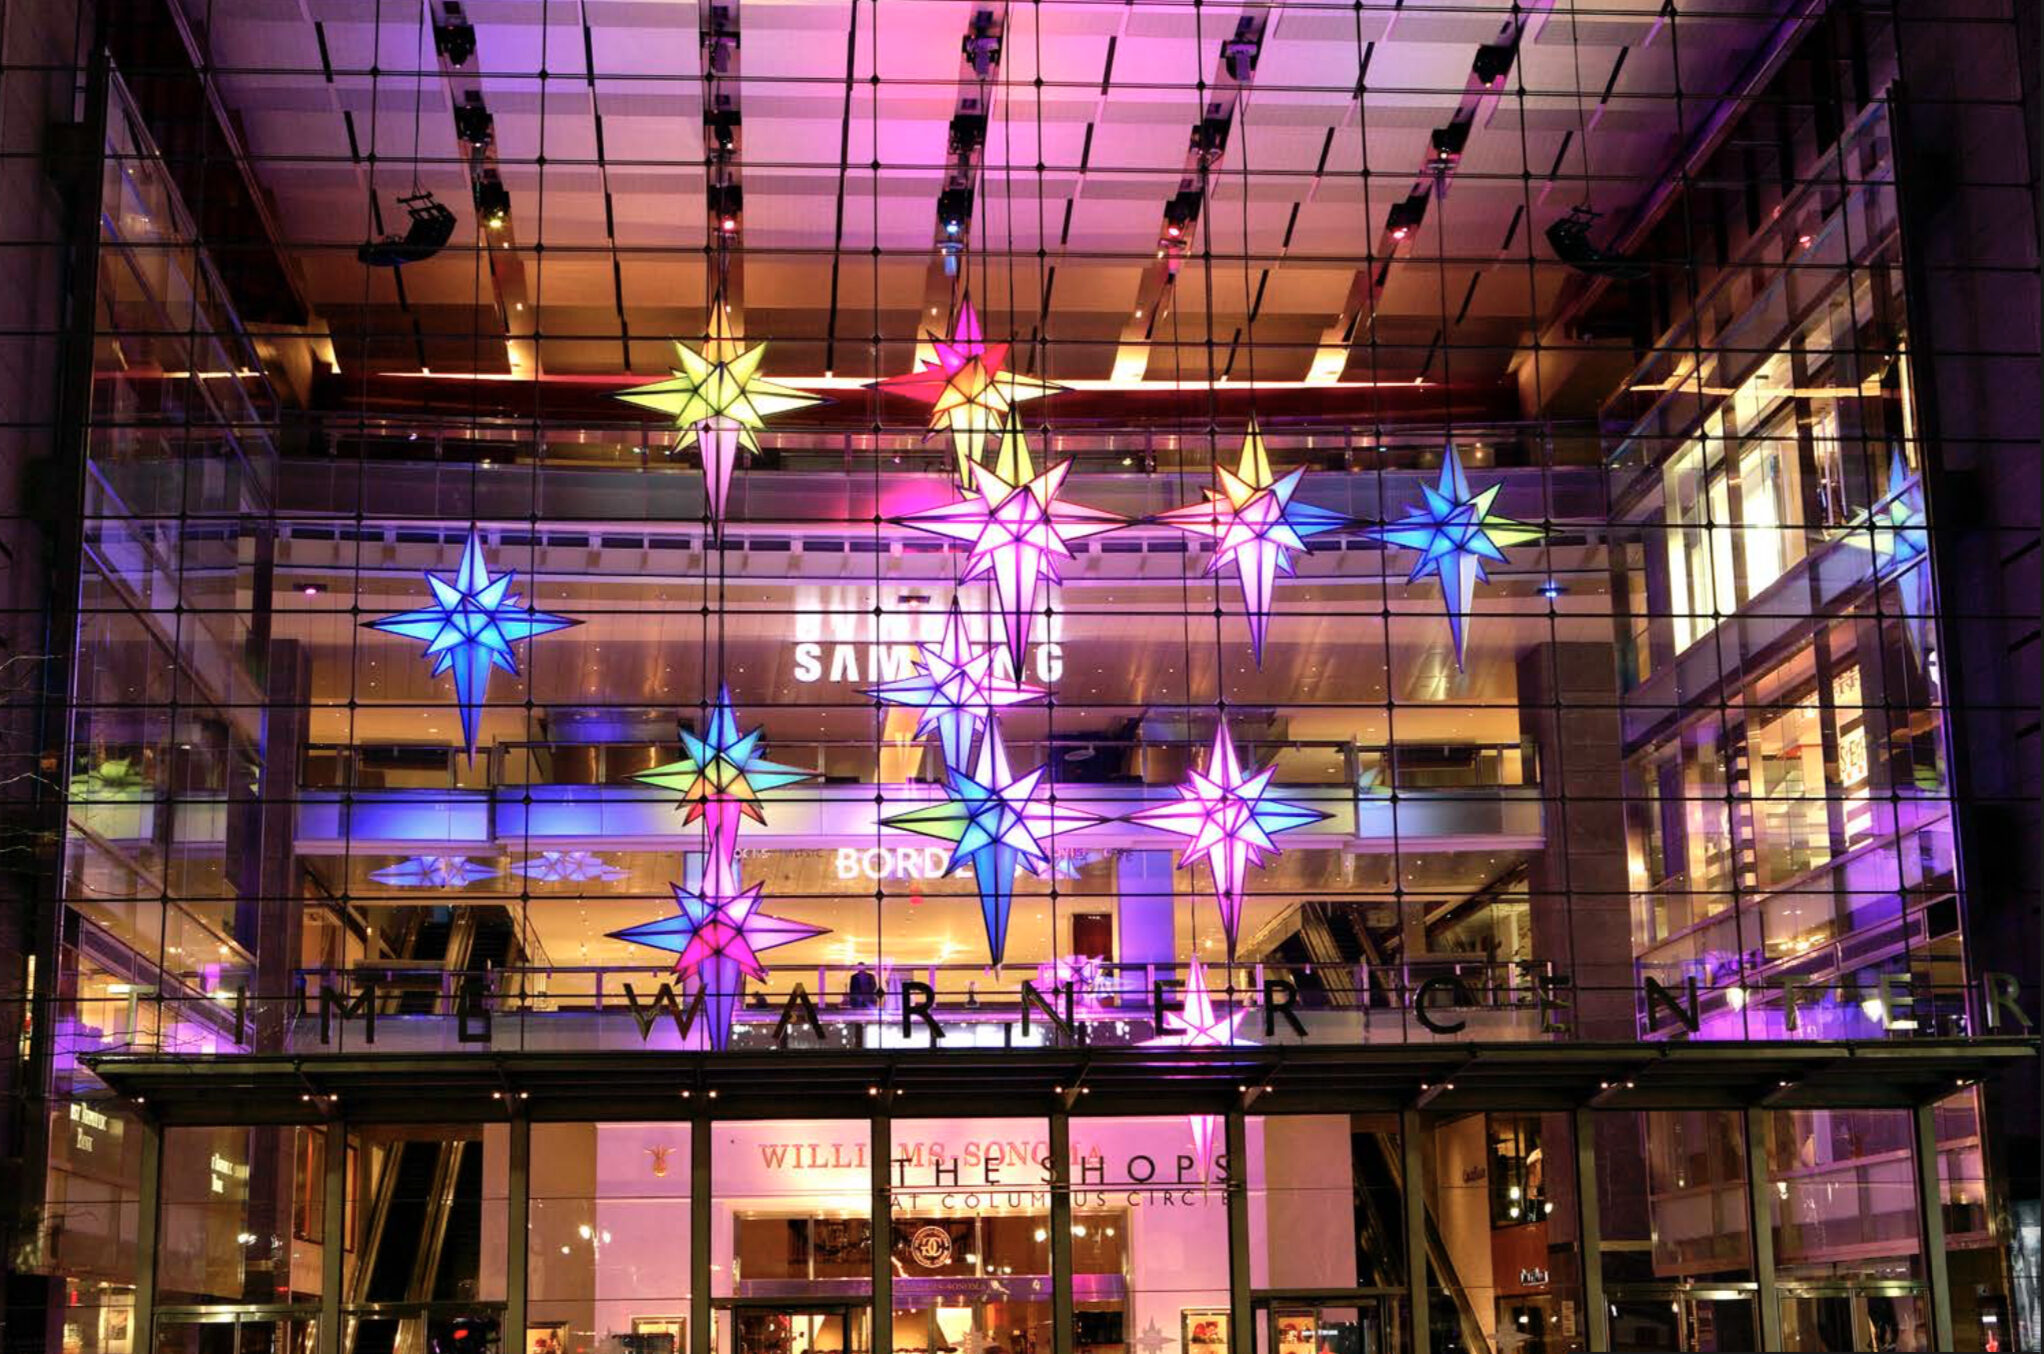 Iconic Holiday, Shopping Center Christmas, New York Christmas, Experiential Marketing, Matthew Schwam, Matthew Schwam Design Solutions